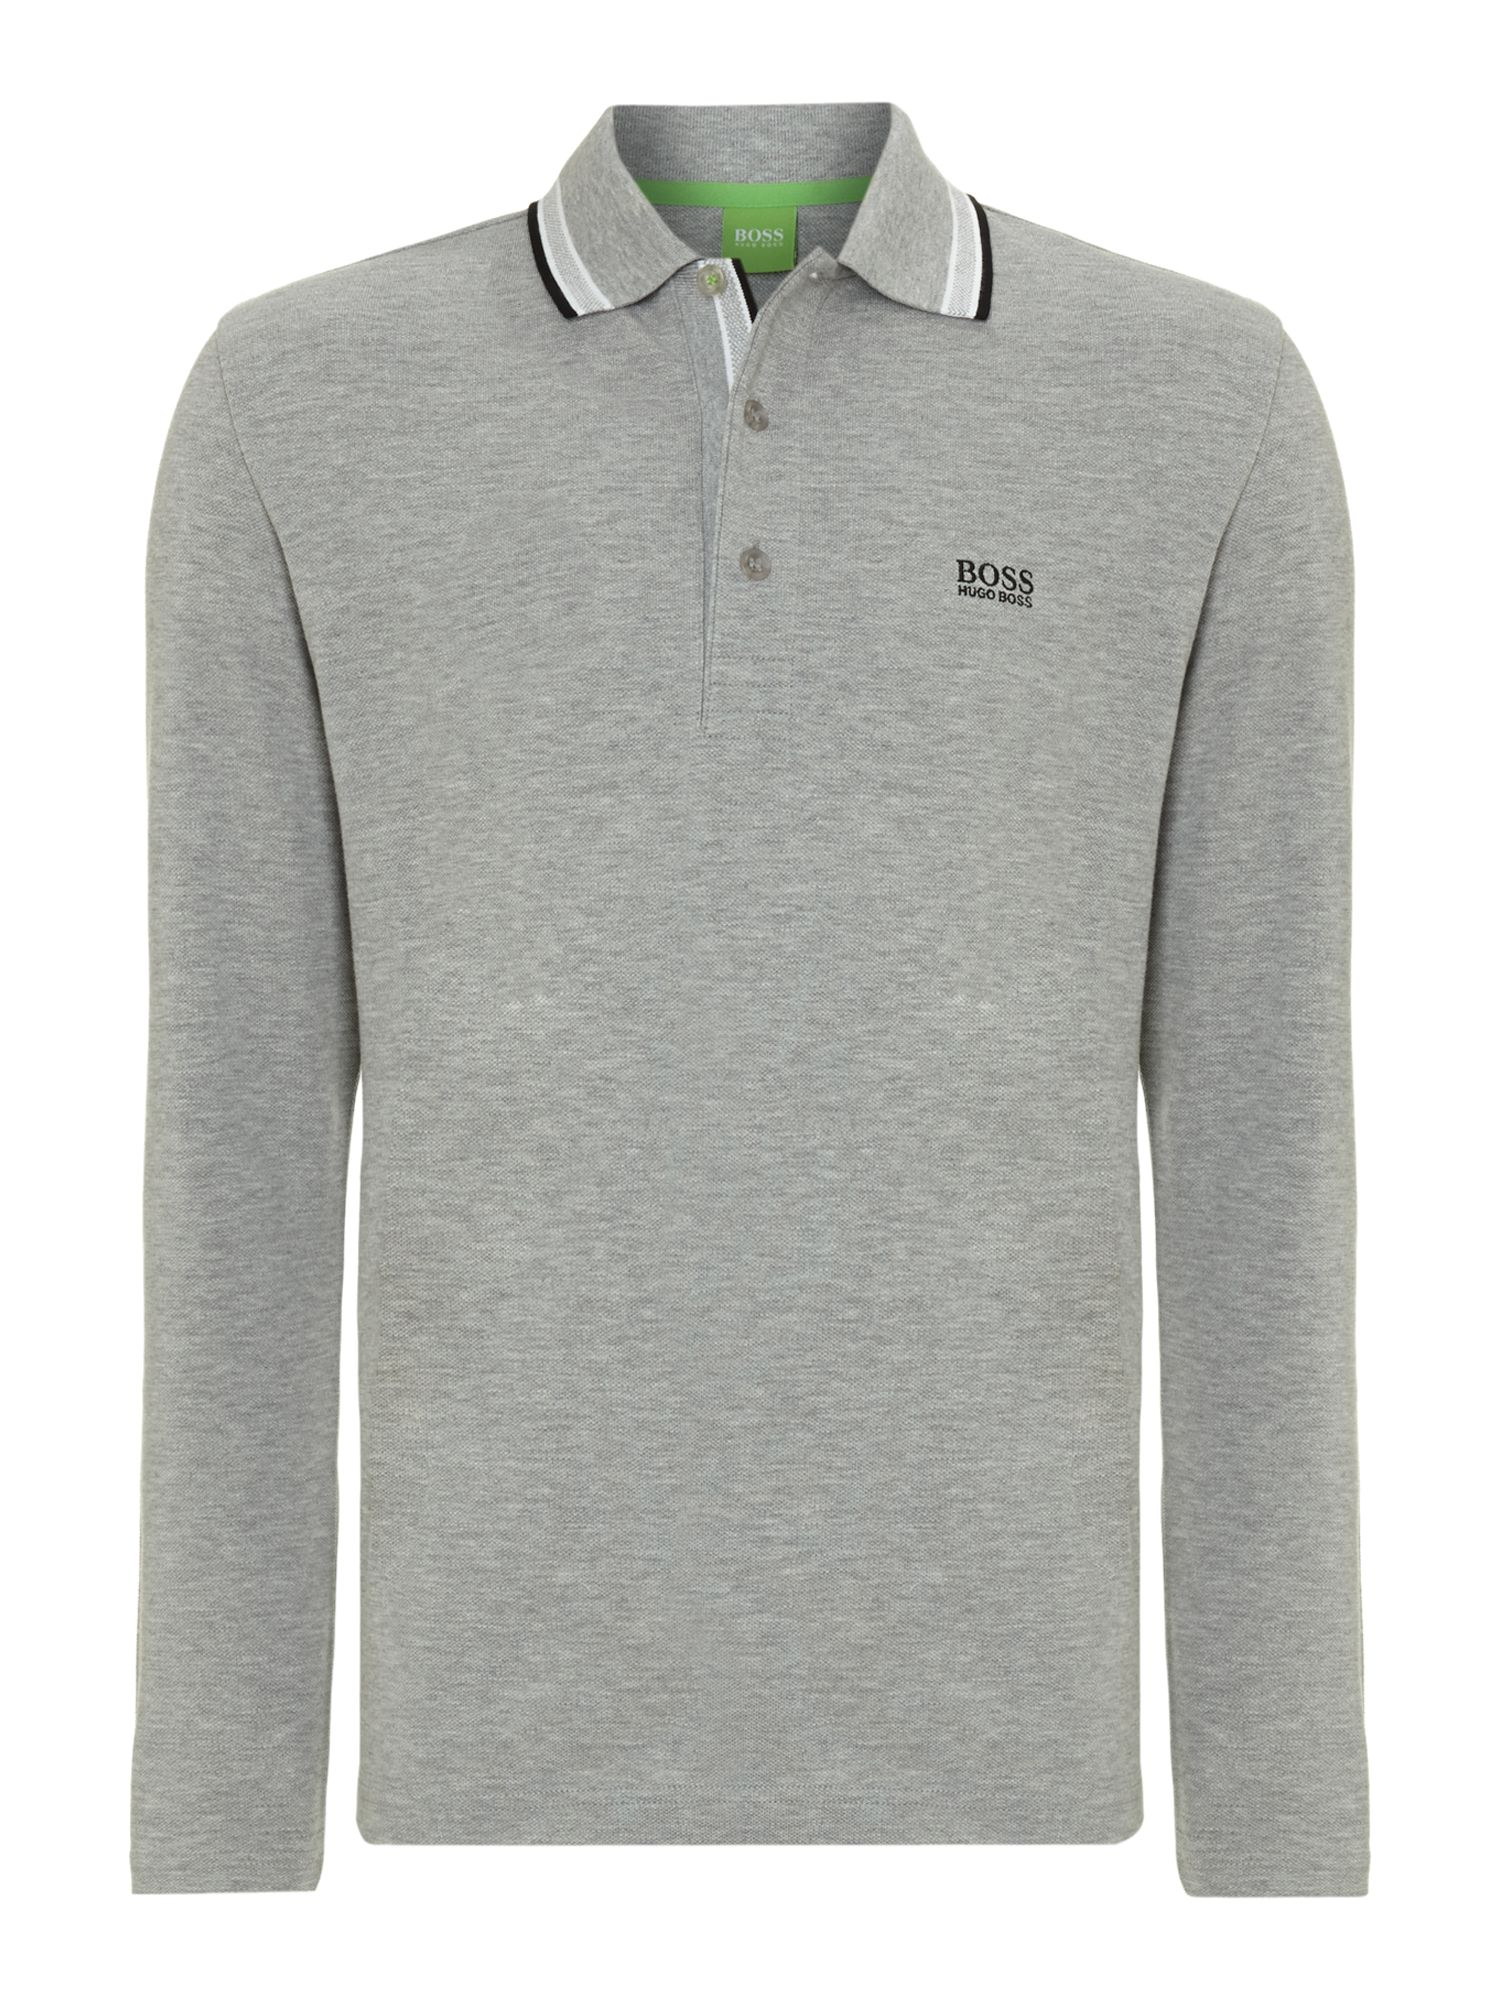 Long sleeve plosy polo shirt